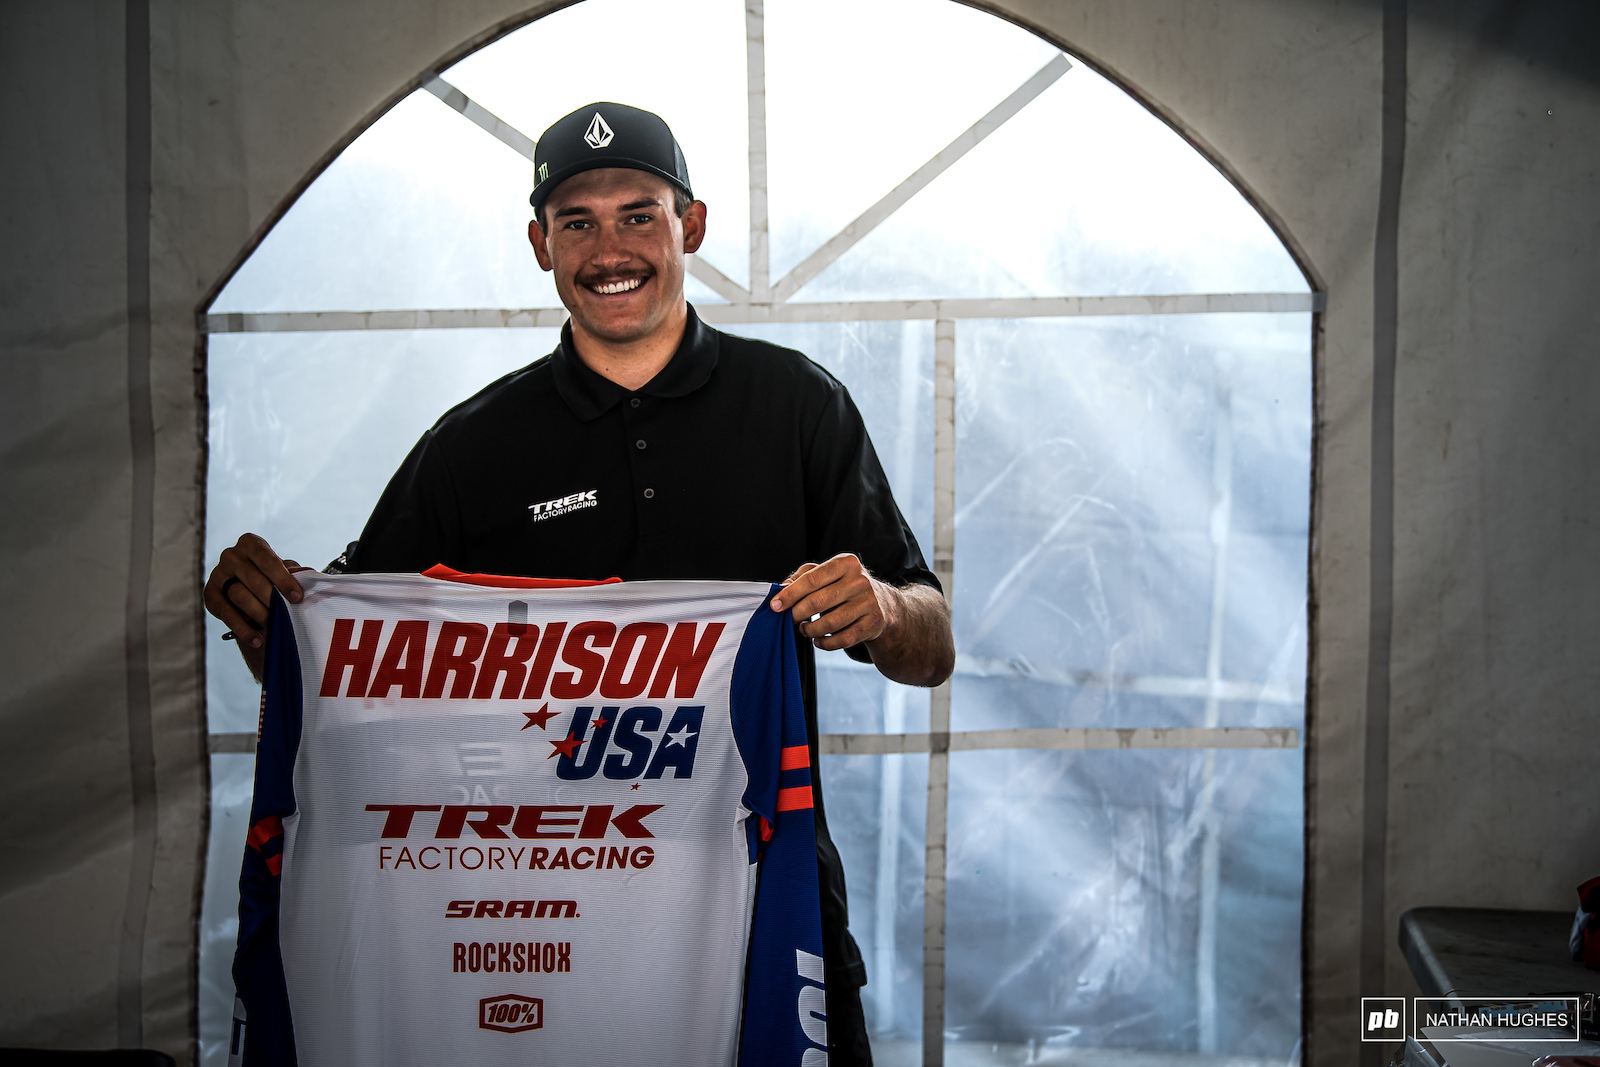 Charlie Harrison ready to go for a stronger than ever before - team USA.